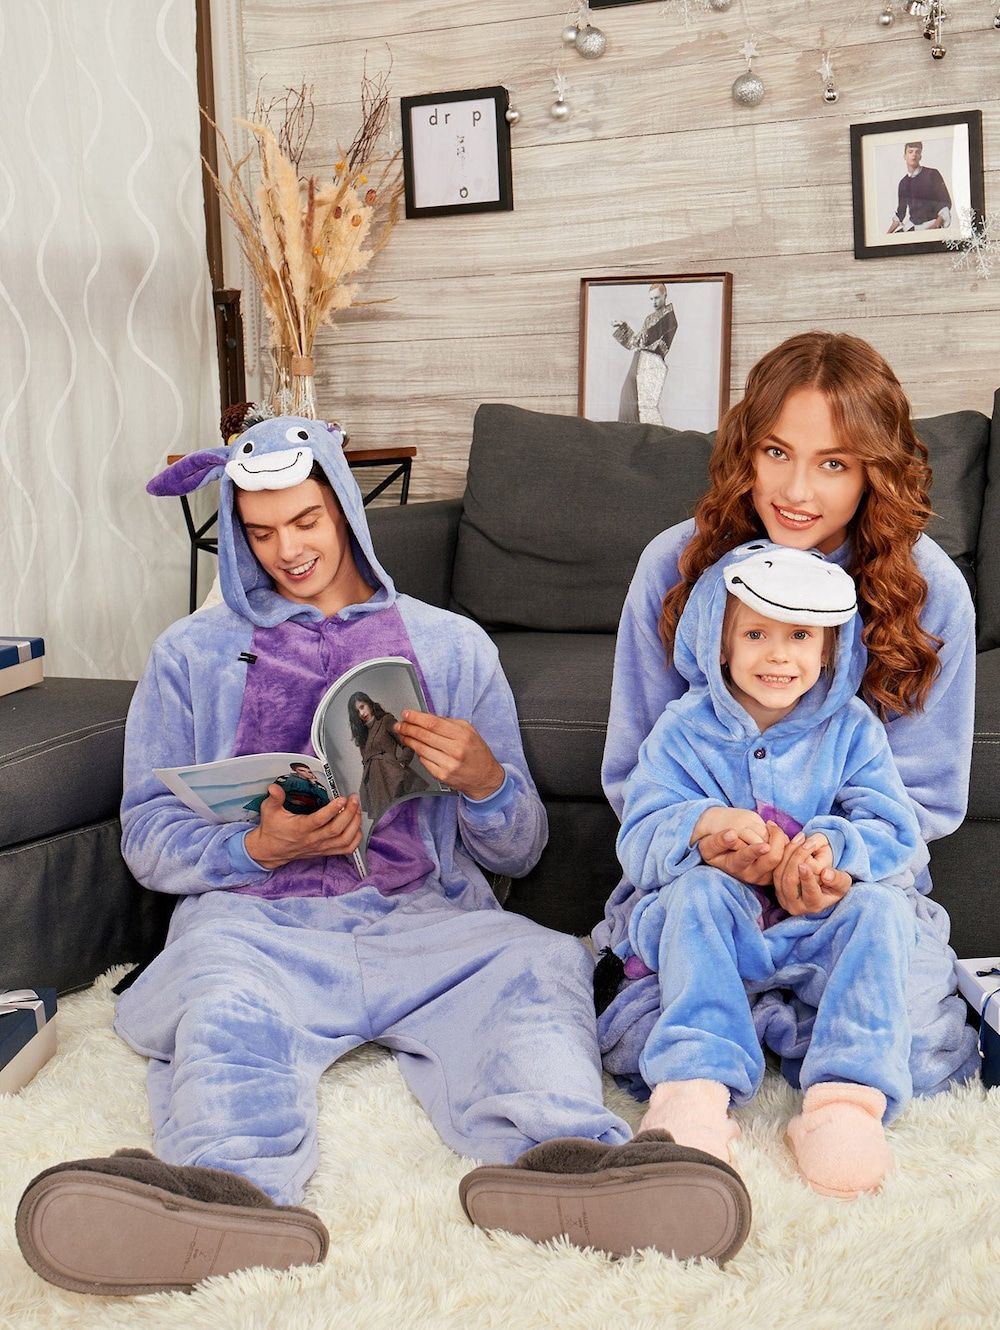 542d4a5eaf Donkey Animal Onesie Matching Family Christmas Pajama Set. Donkey Animal  Onesie Matching Family Christmas Pajama Set - BLUISH VIOLET DAD S